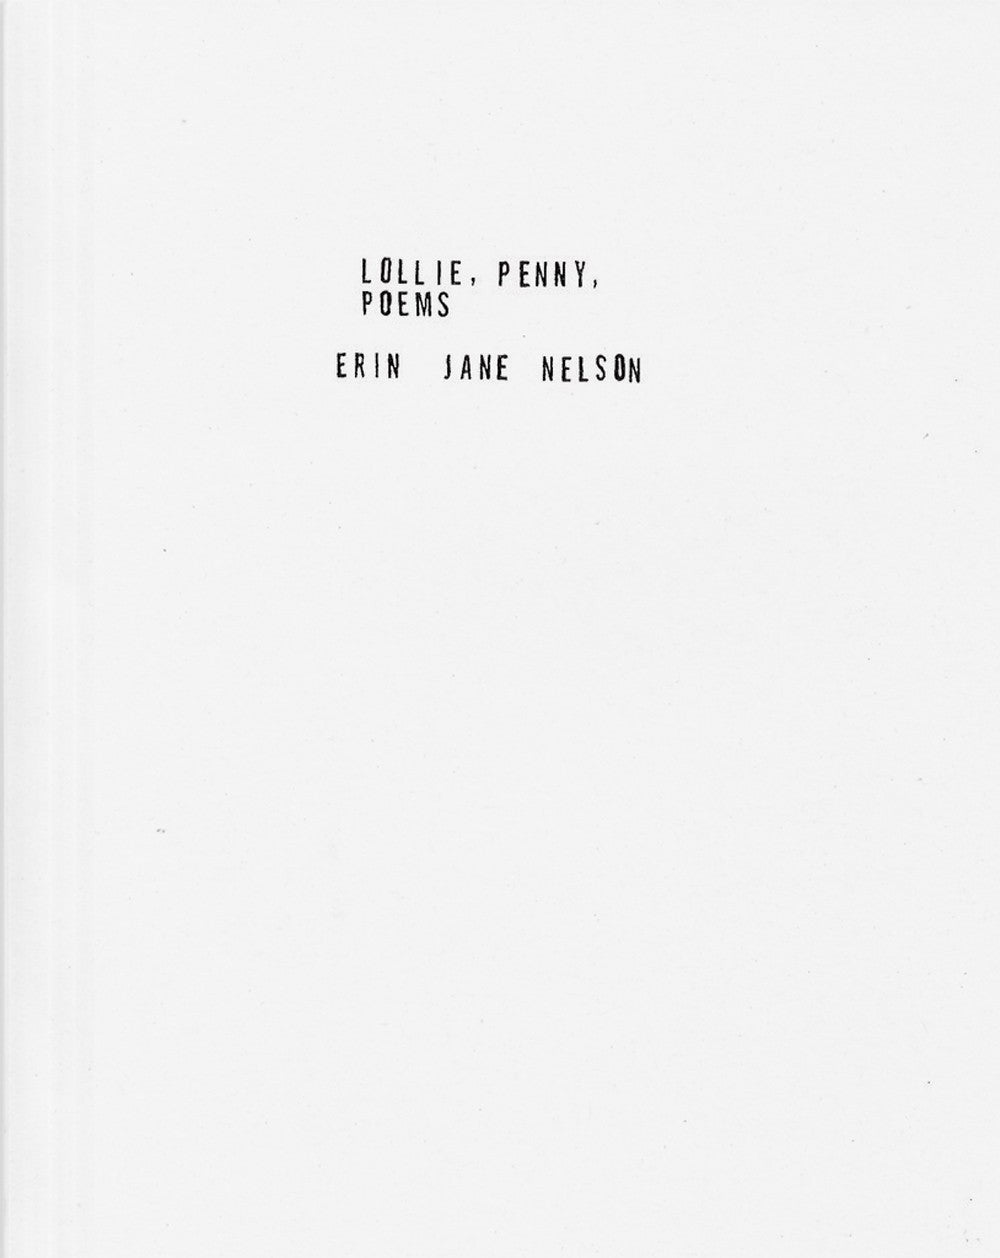 Lollie, Penny, Poems - Erin Jane Nelson.